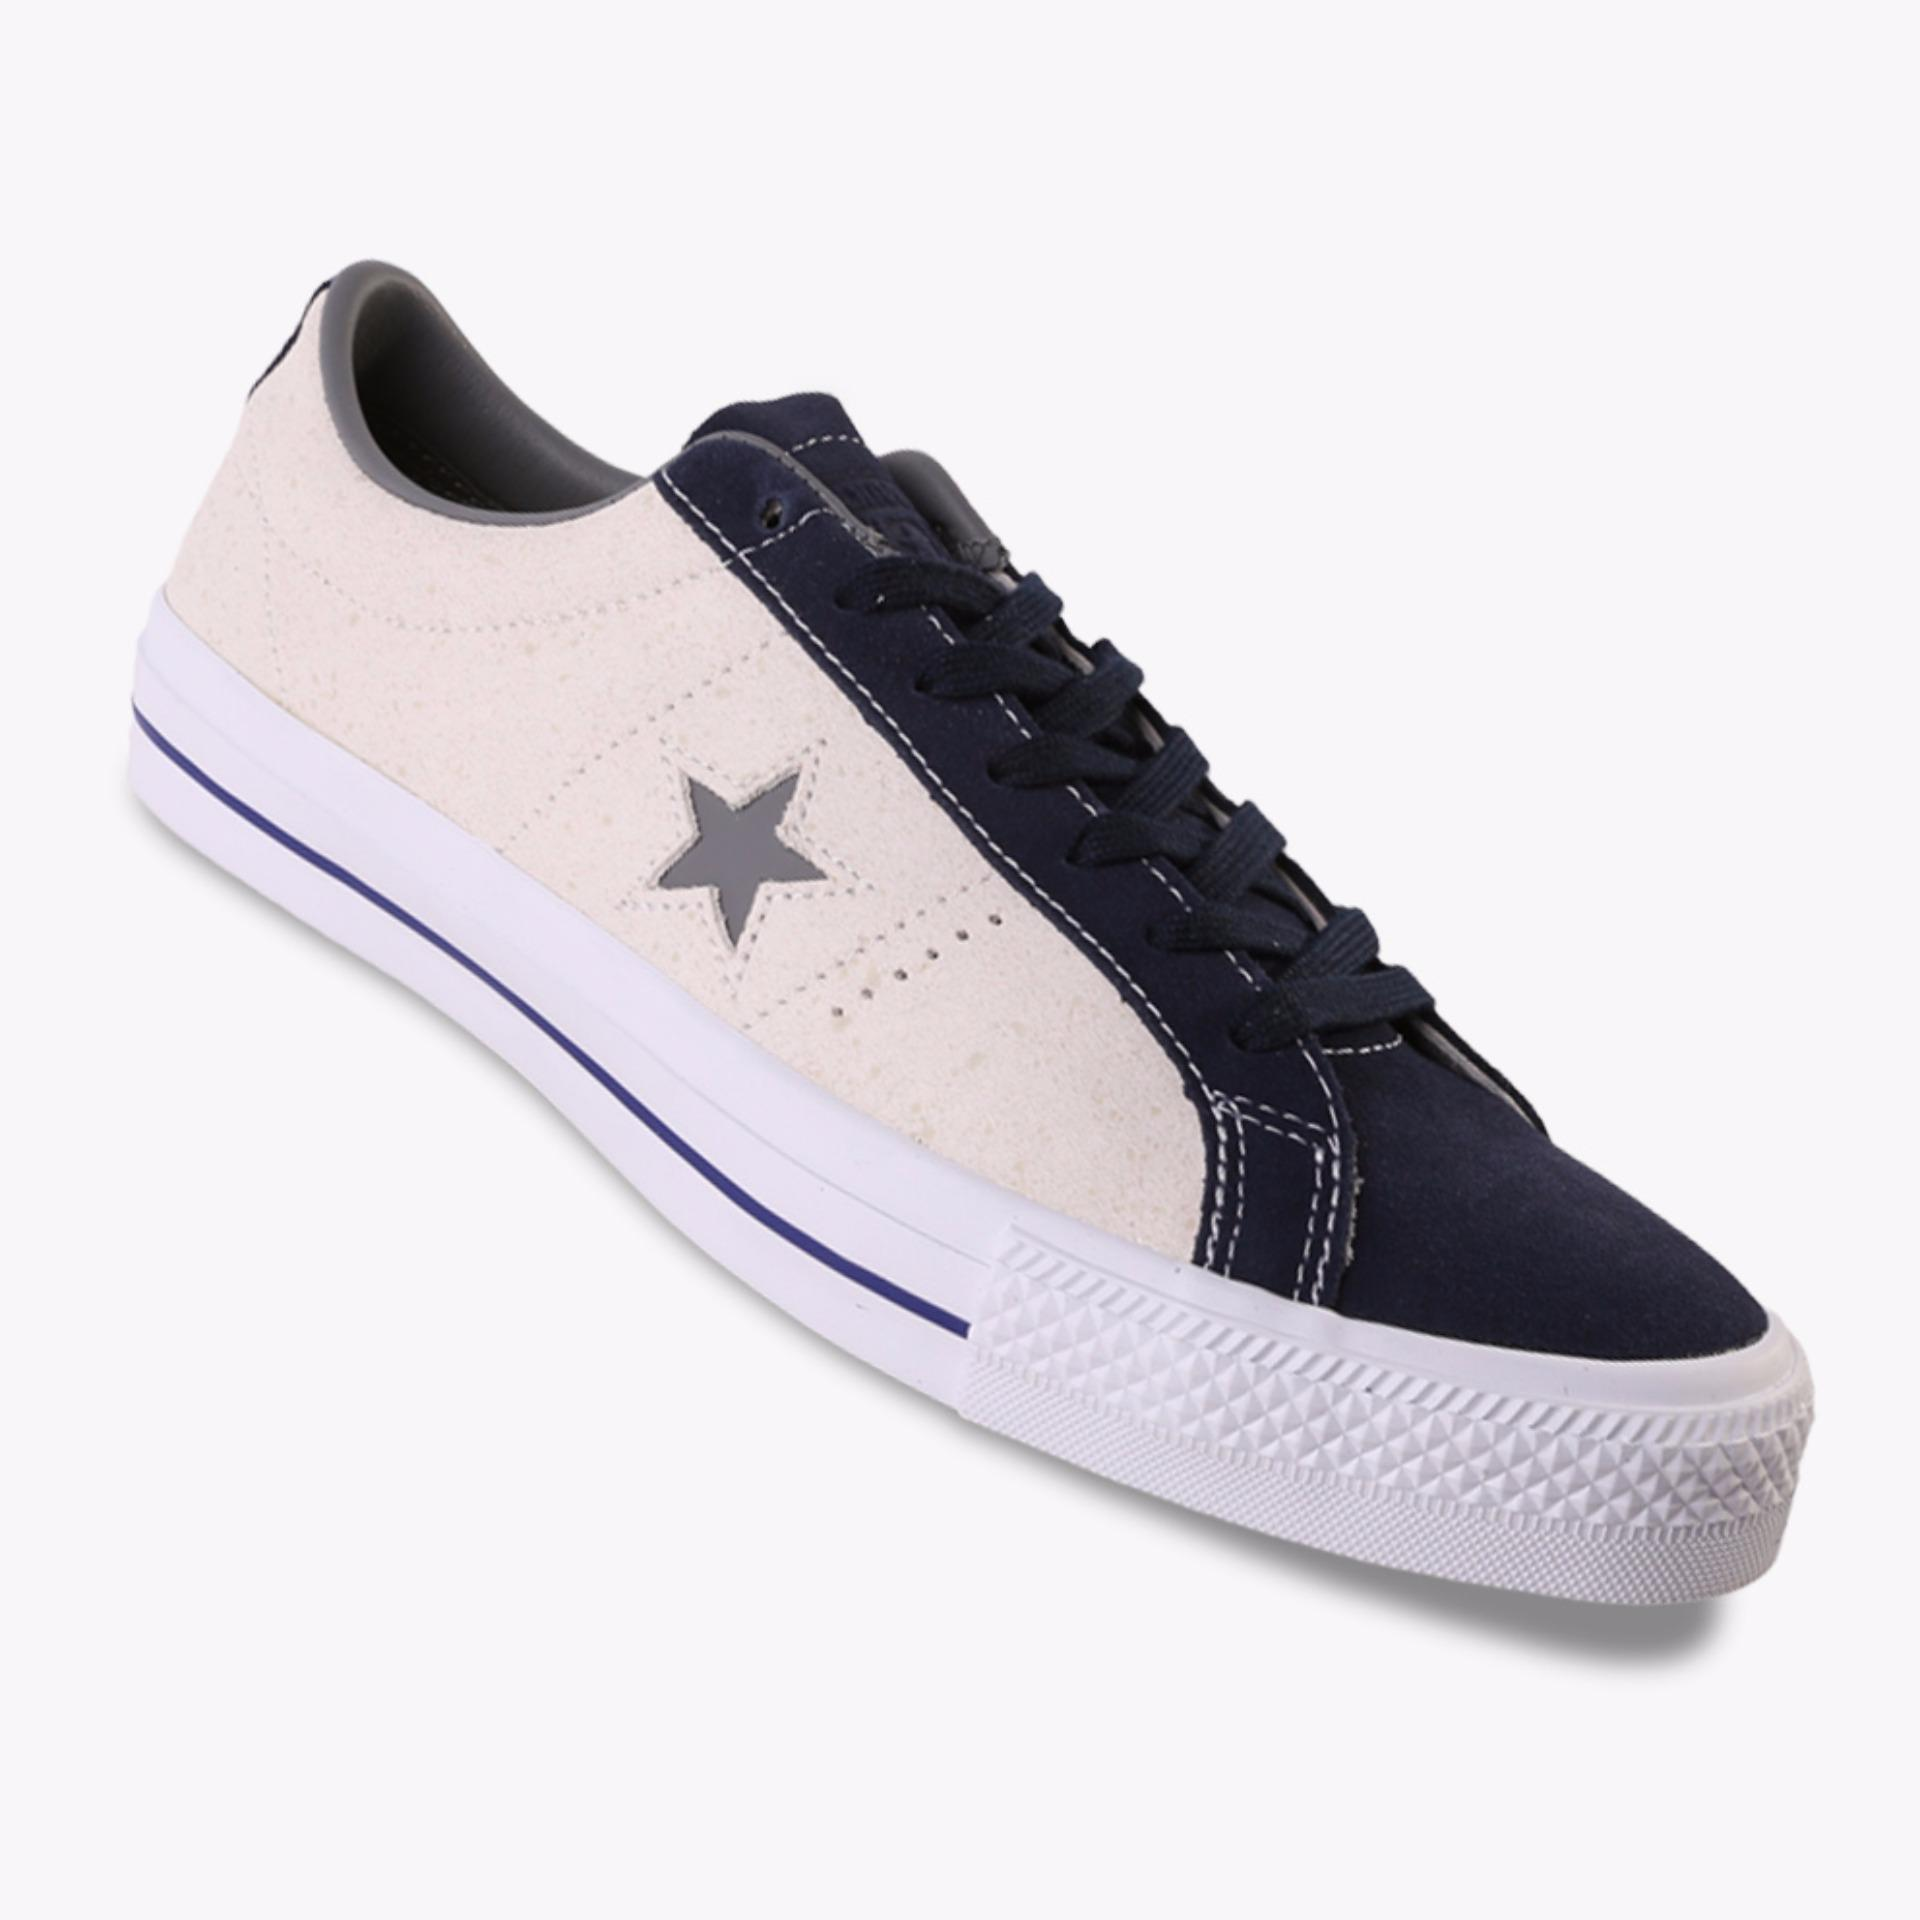 Harga Converse One Star Pro Ox Men S Sneakers Abu Abu Converse Indonesia